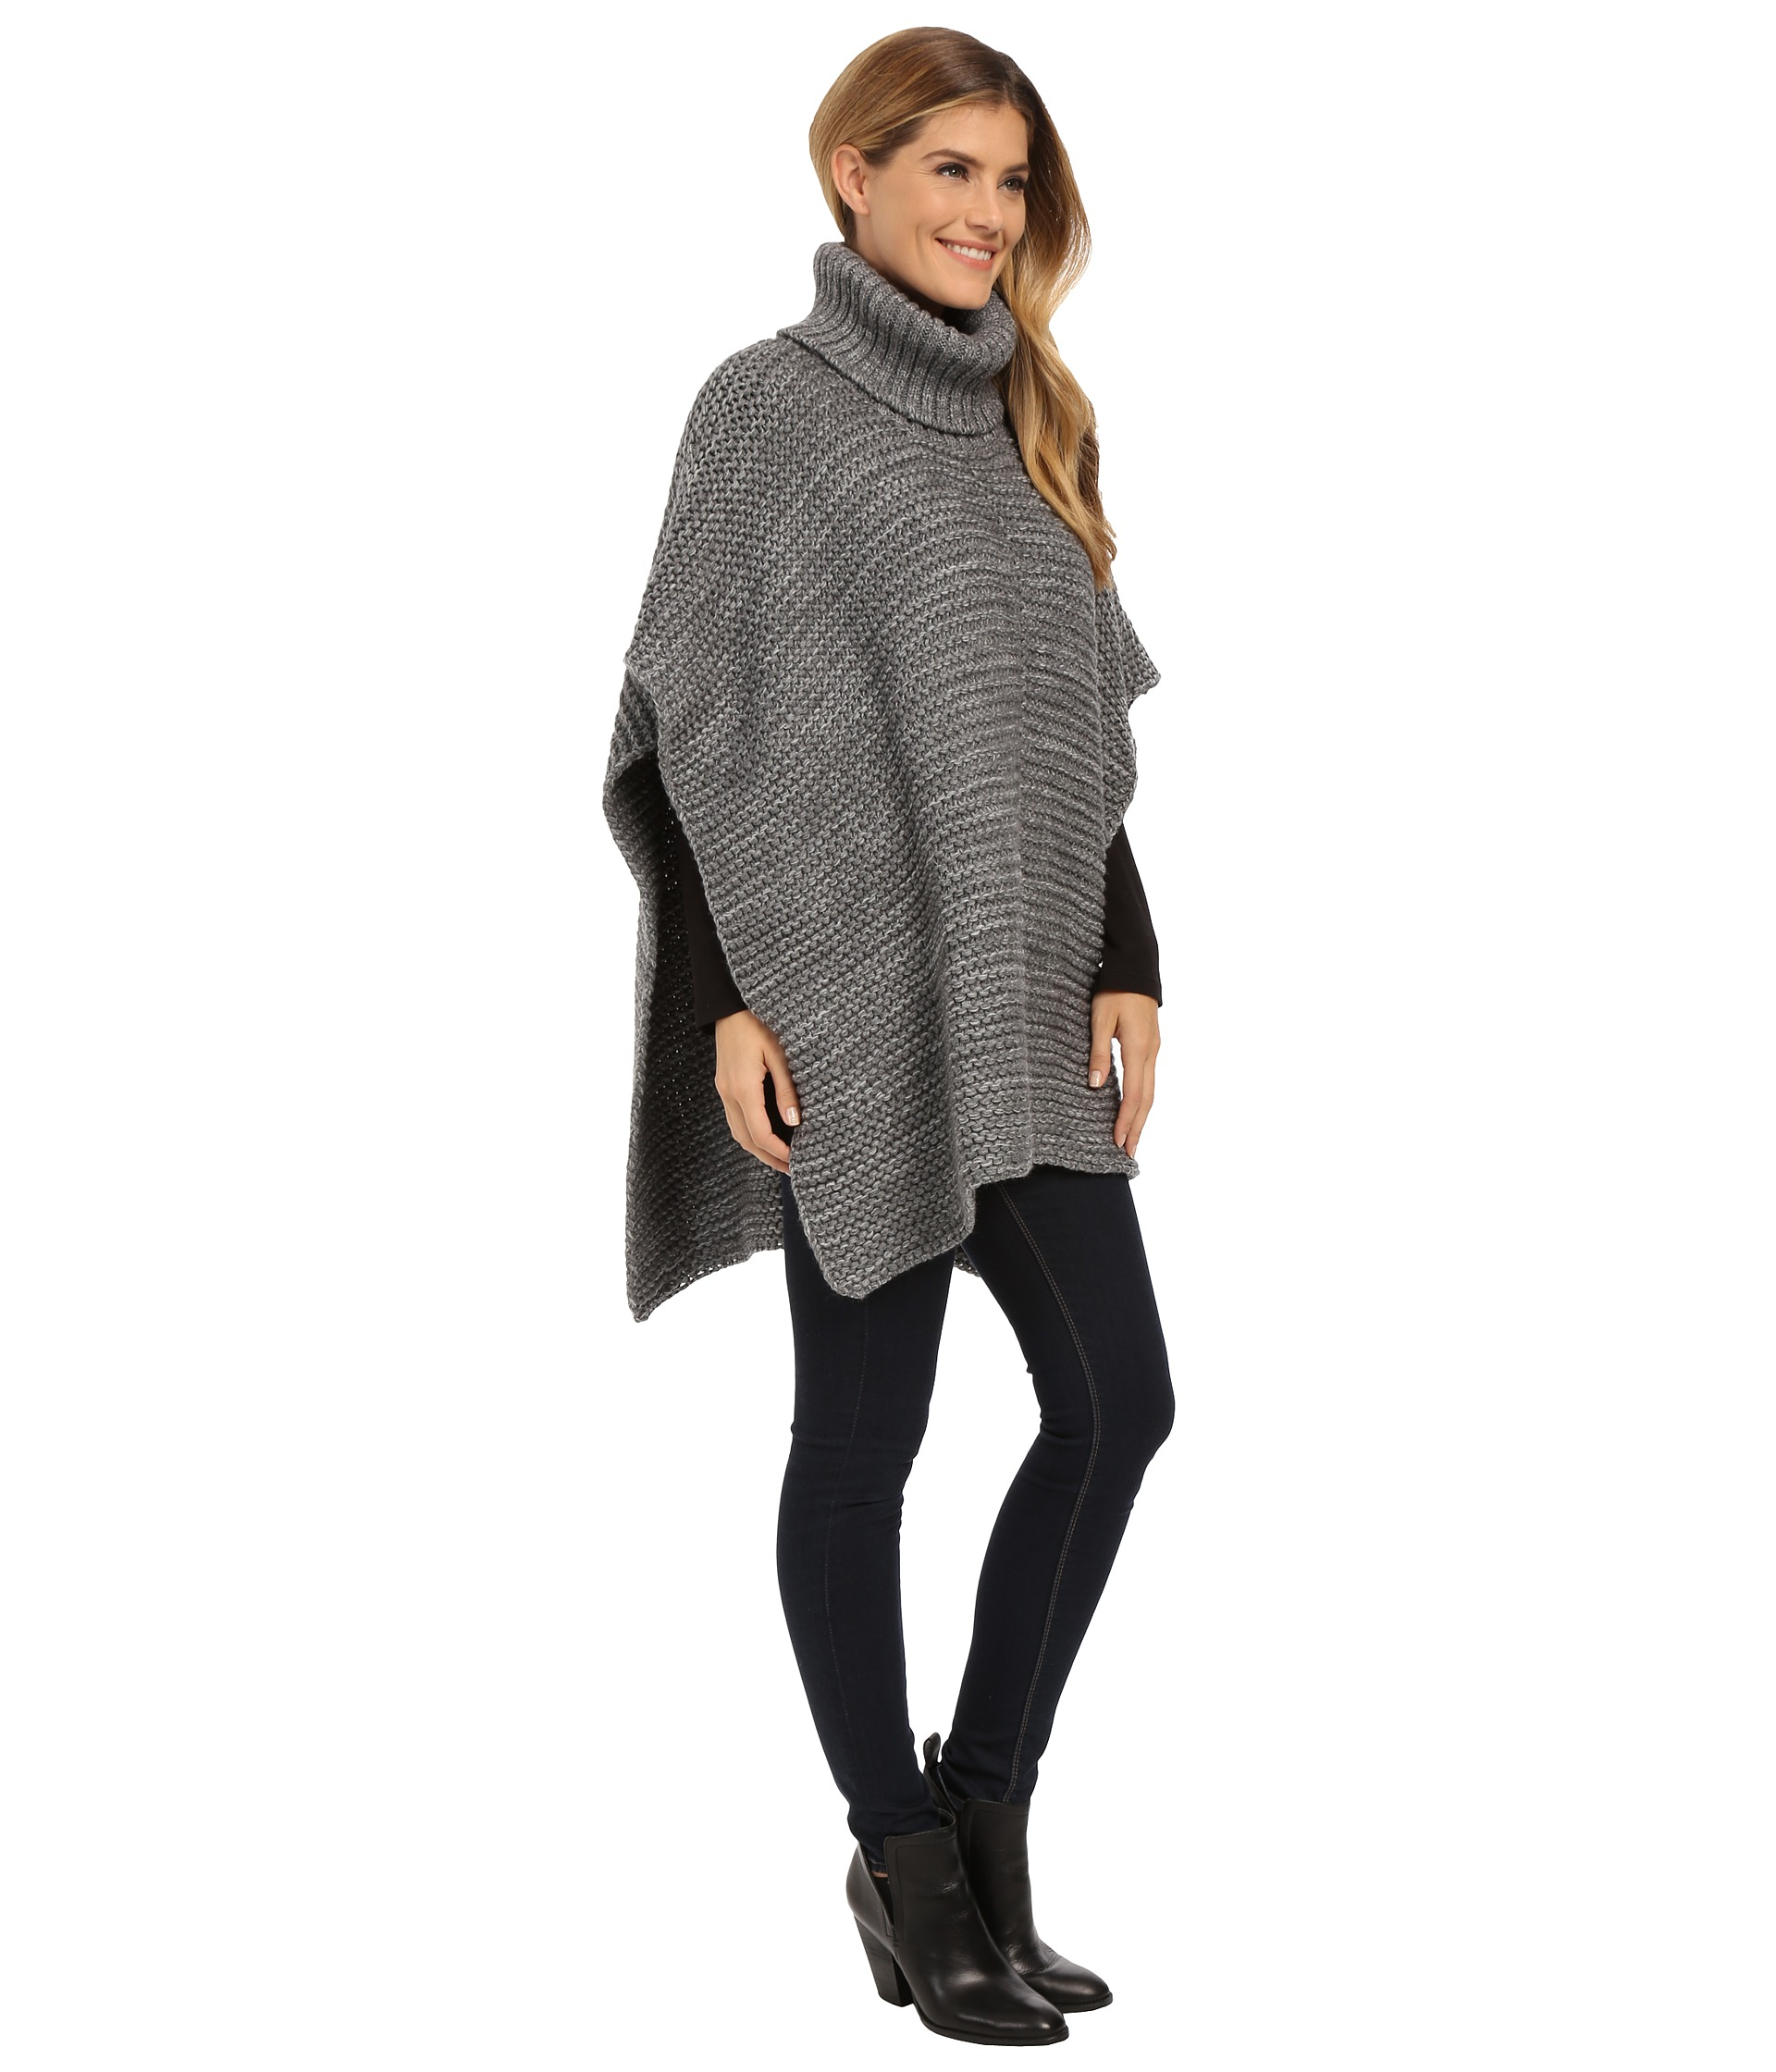 Zappos Sweater Uggs 77